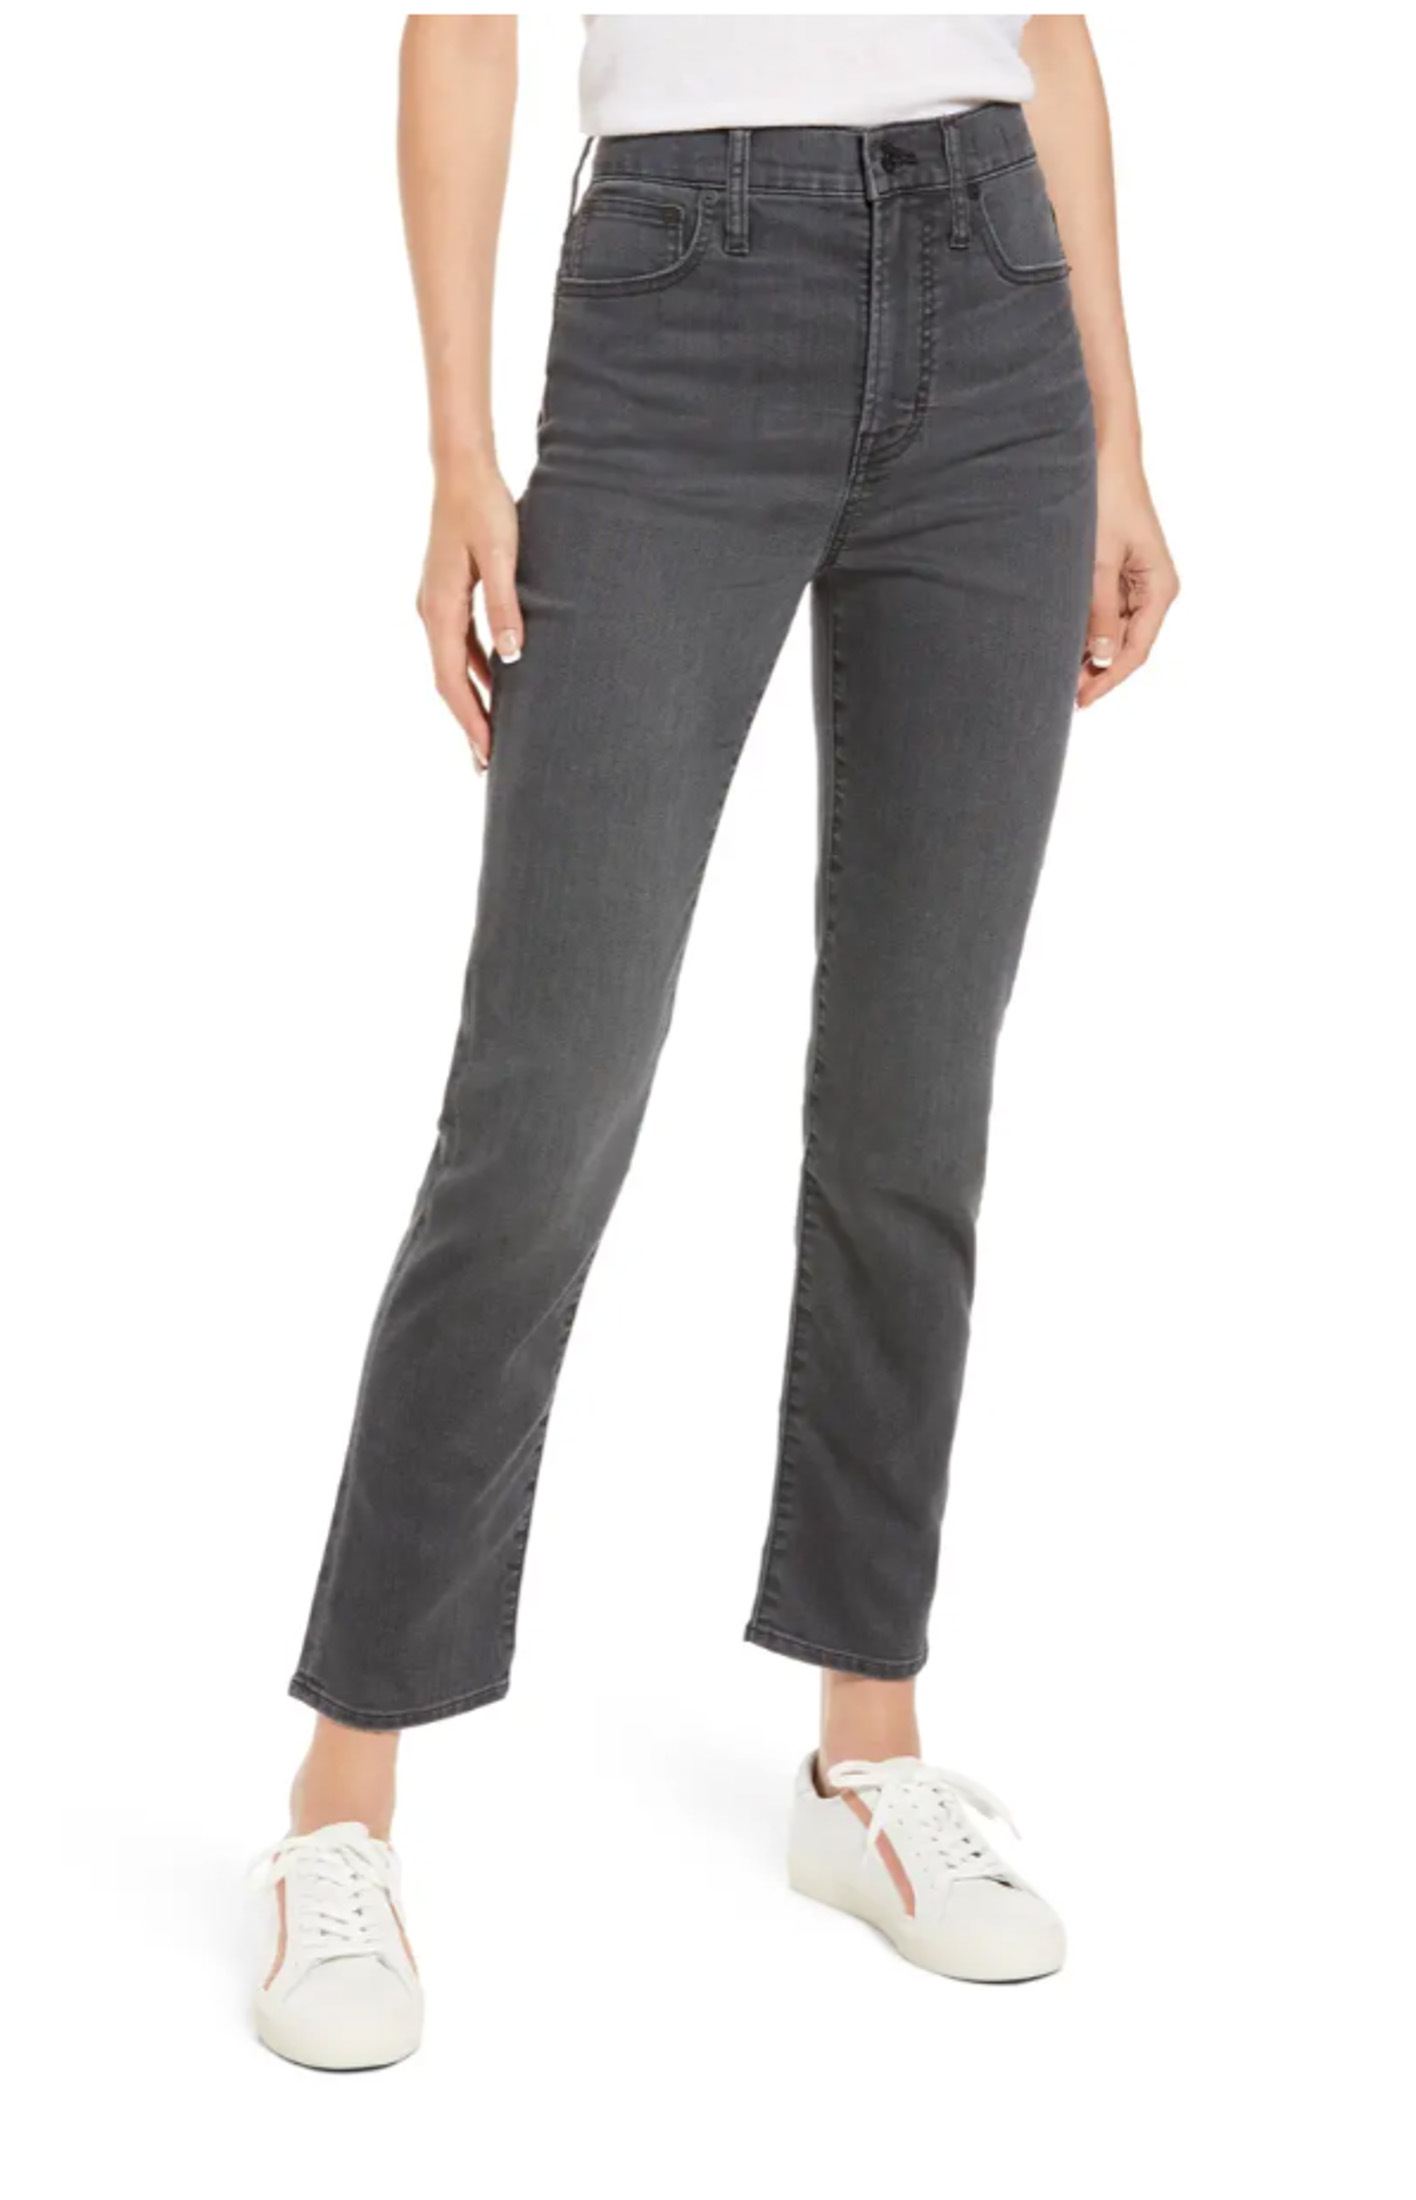 You can't beat Madewell when it comes to affordable and flattering denim. I'm loving these high-waisted, faded black, vintage- inspired jeans!